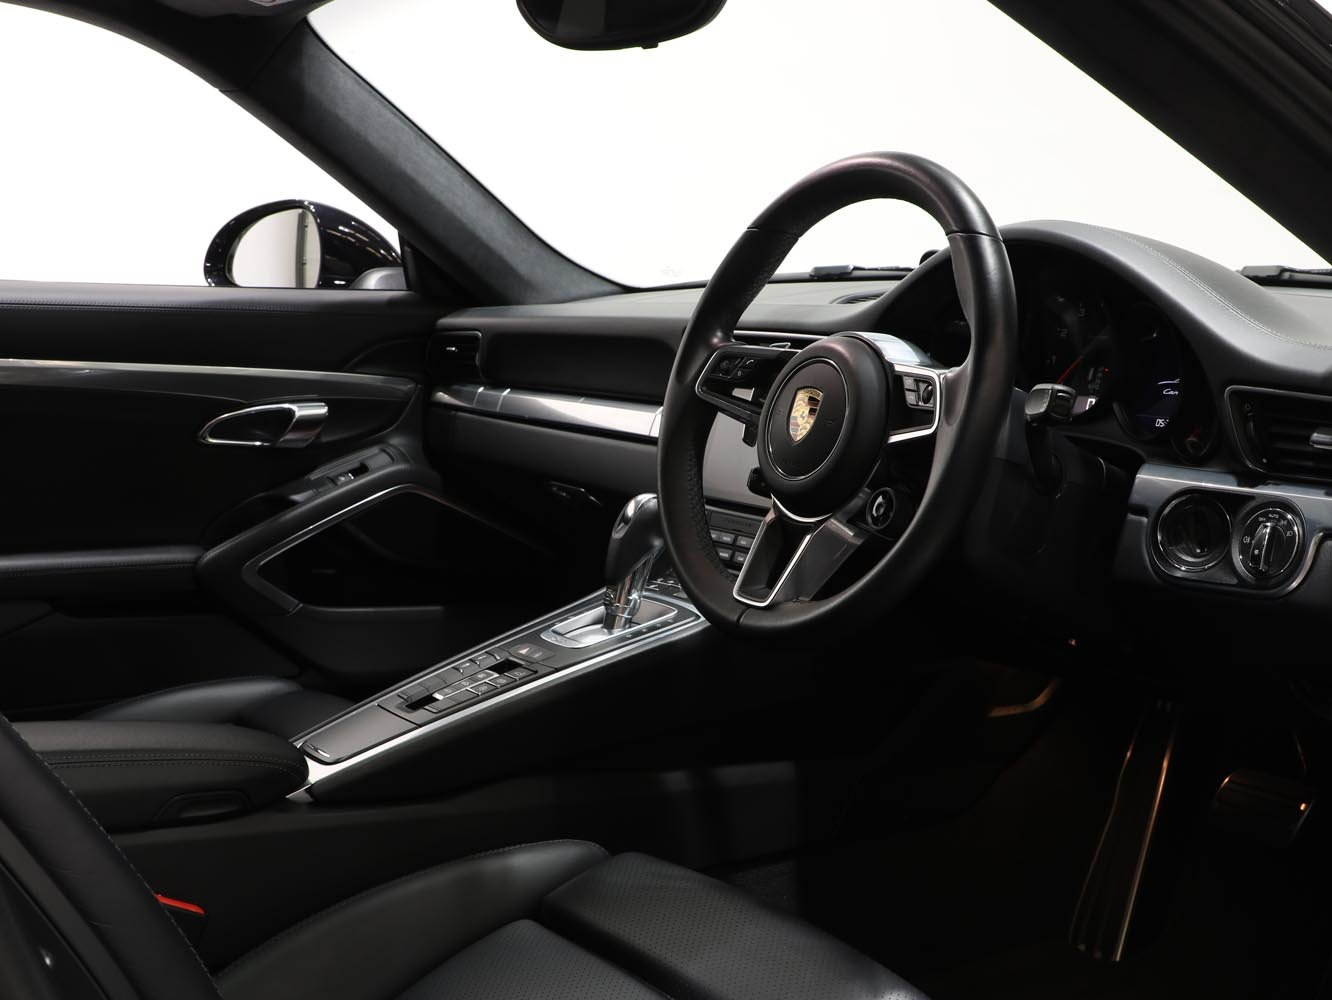 2016 16 16 PORSCHE 911 CARRERA S 991.2 PDK For Sale (picture 4 of 6)